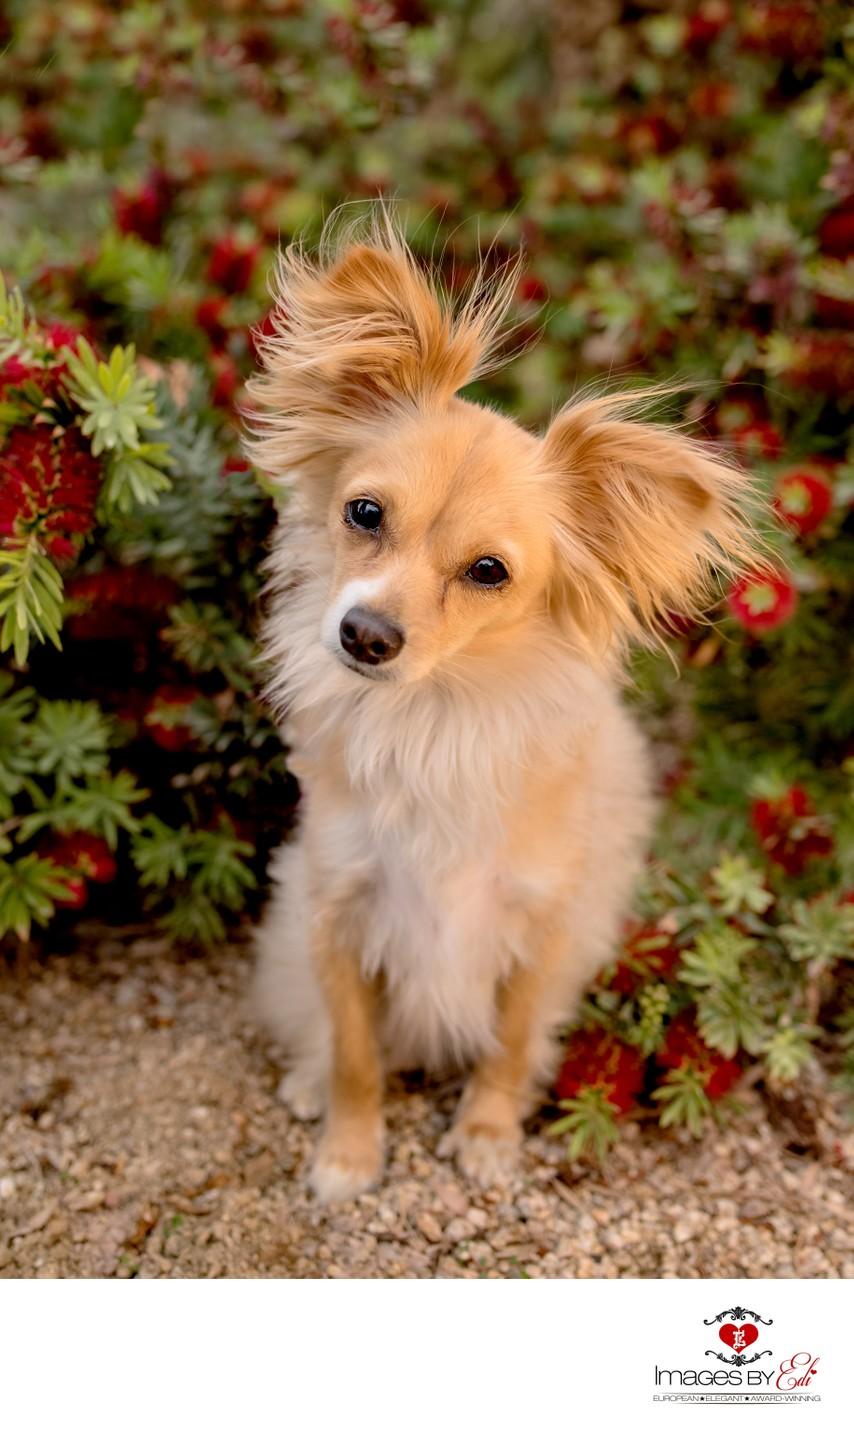 Las Vegas Pet Photographer | Pet Photography | Pet Photos | Images By EDI | Papillon